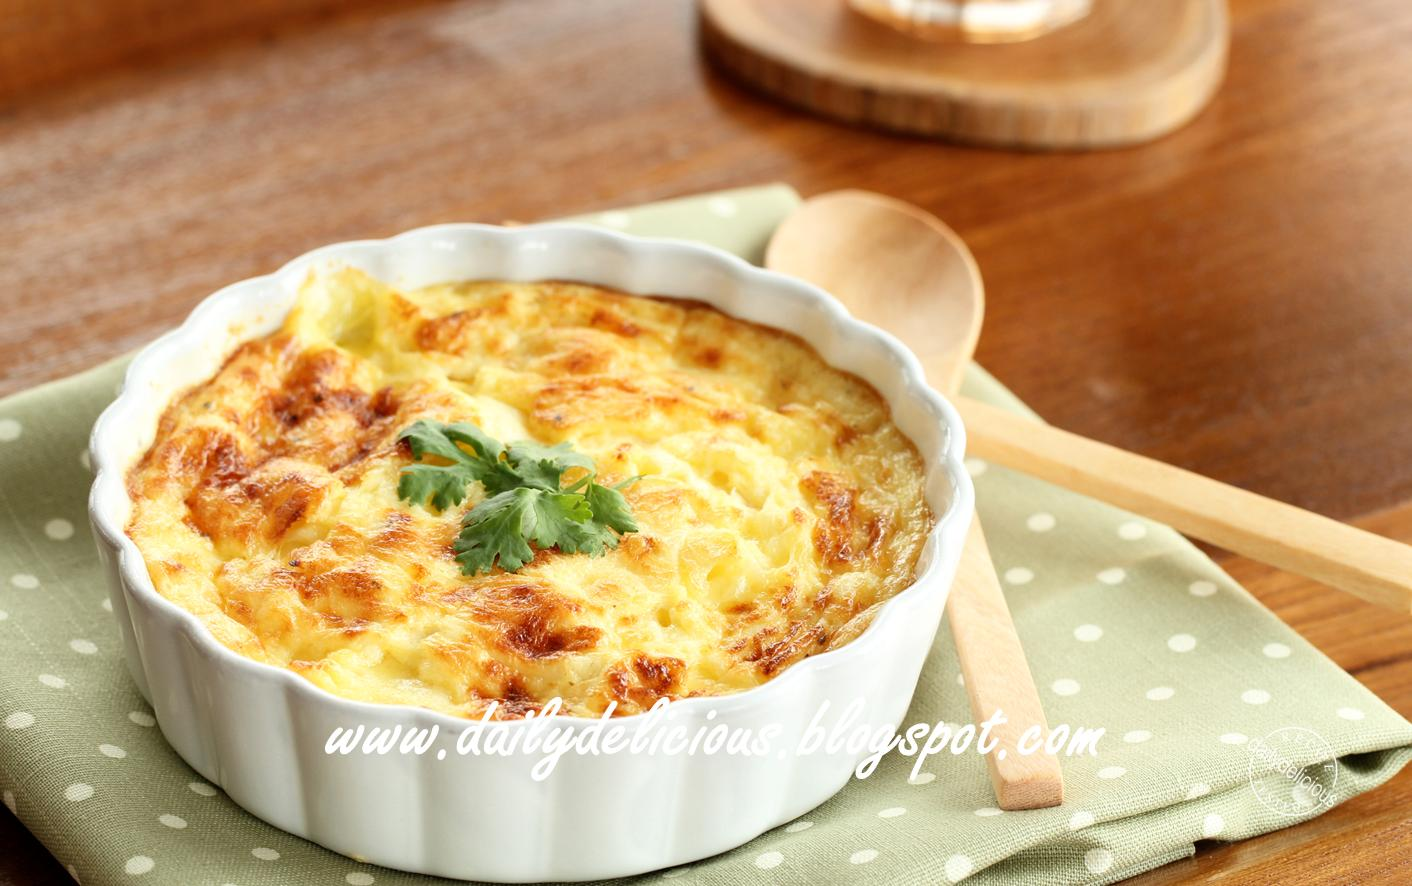 dailydelicious: Cooking for one: Baked egg with onion and cheese